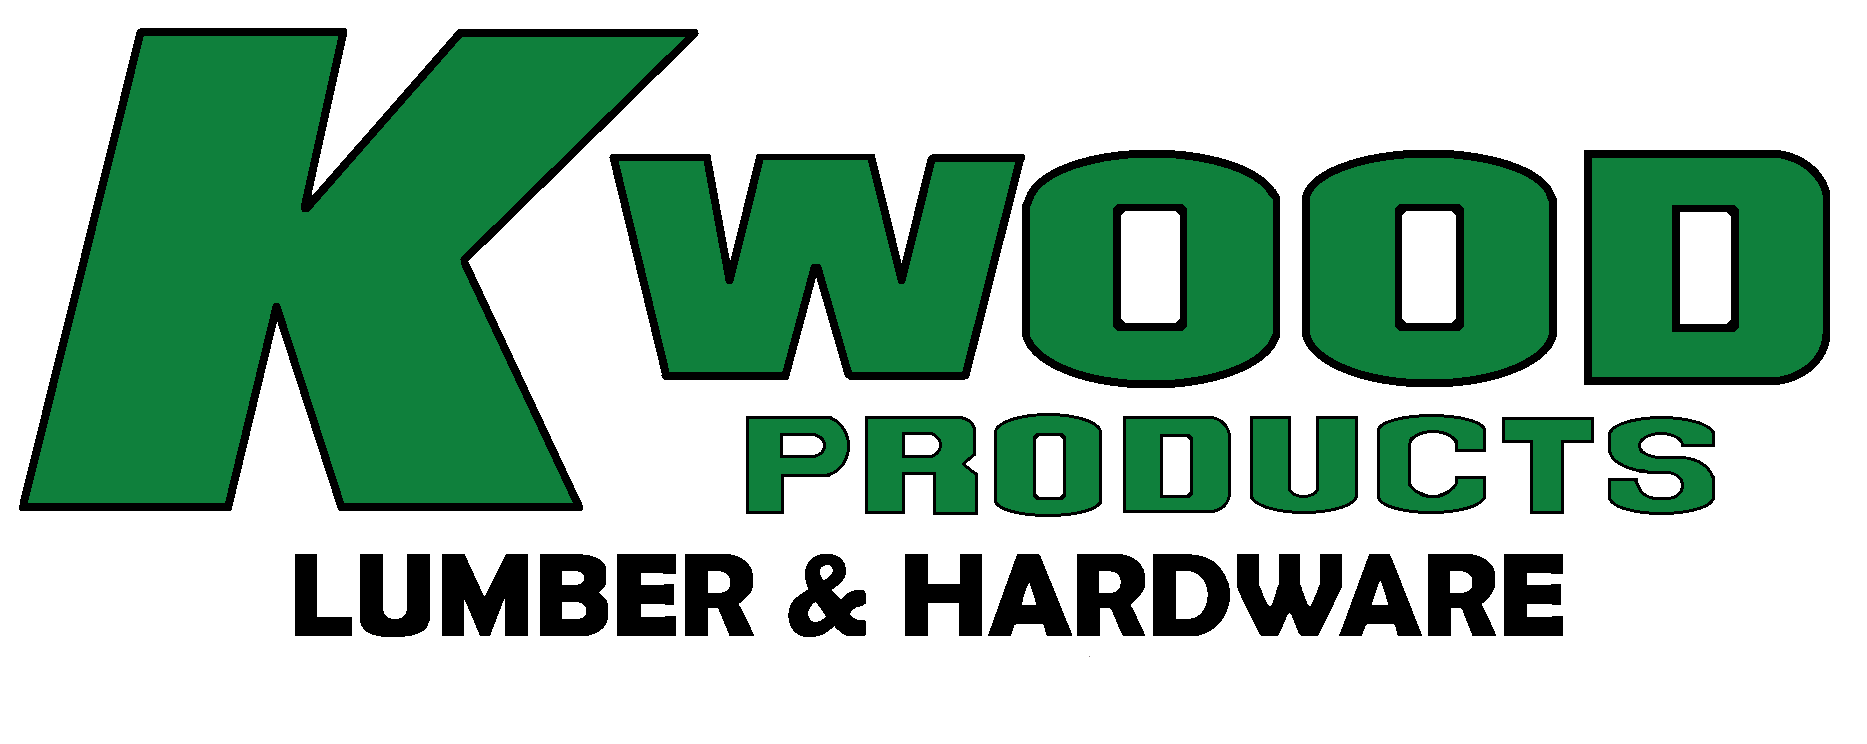 K-Wood Products Lumber, Hardware, & Building Materials - South Bend, Indiana